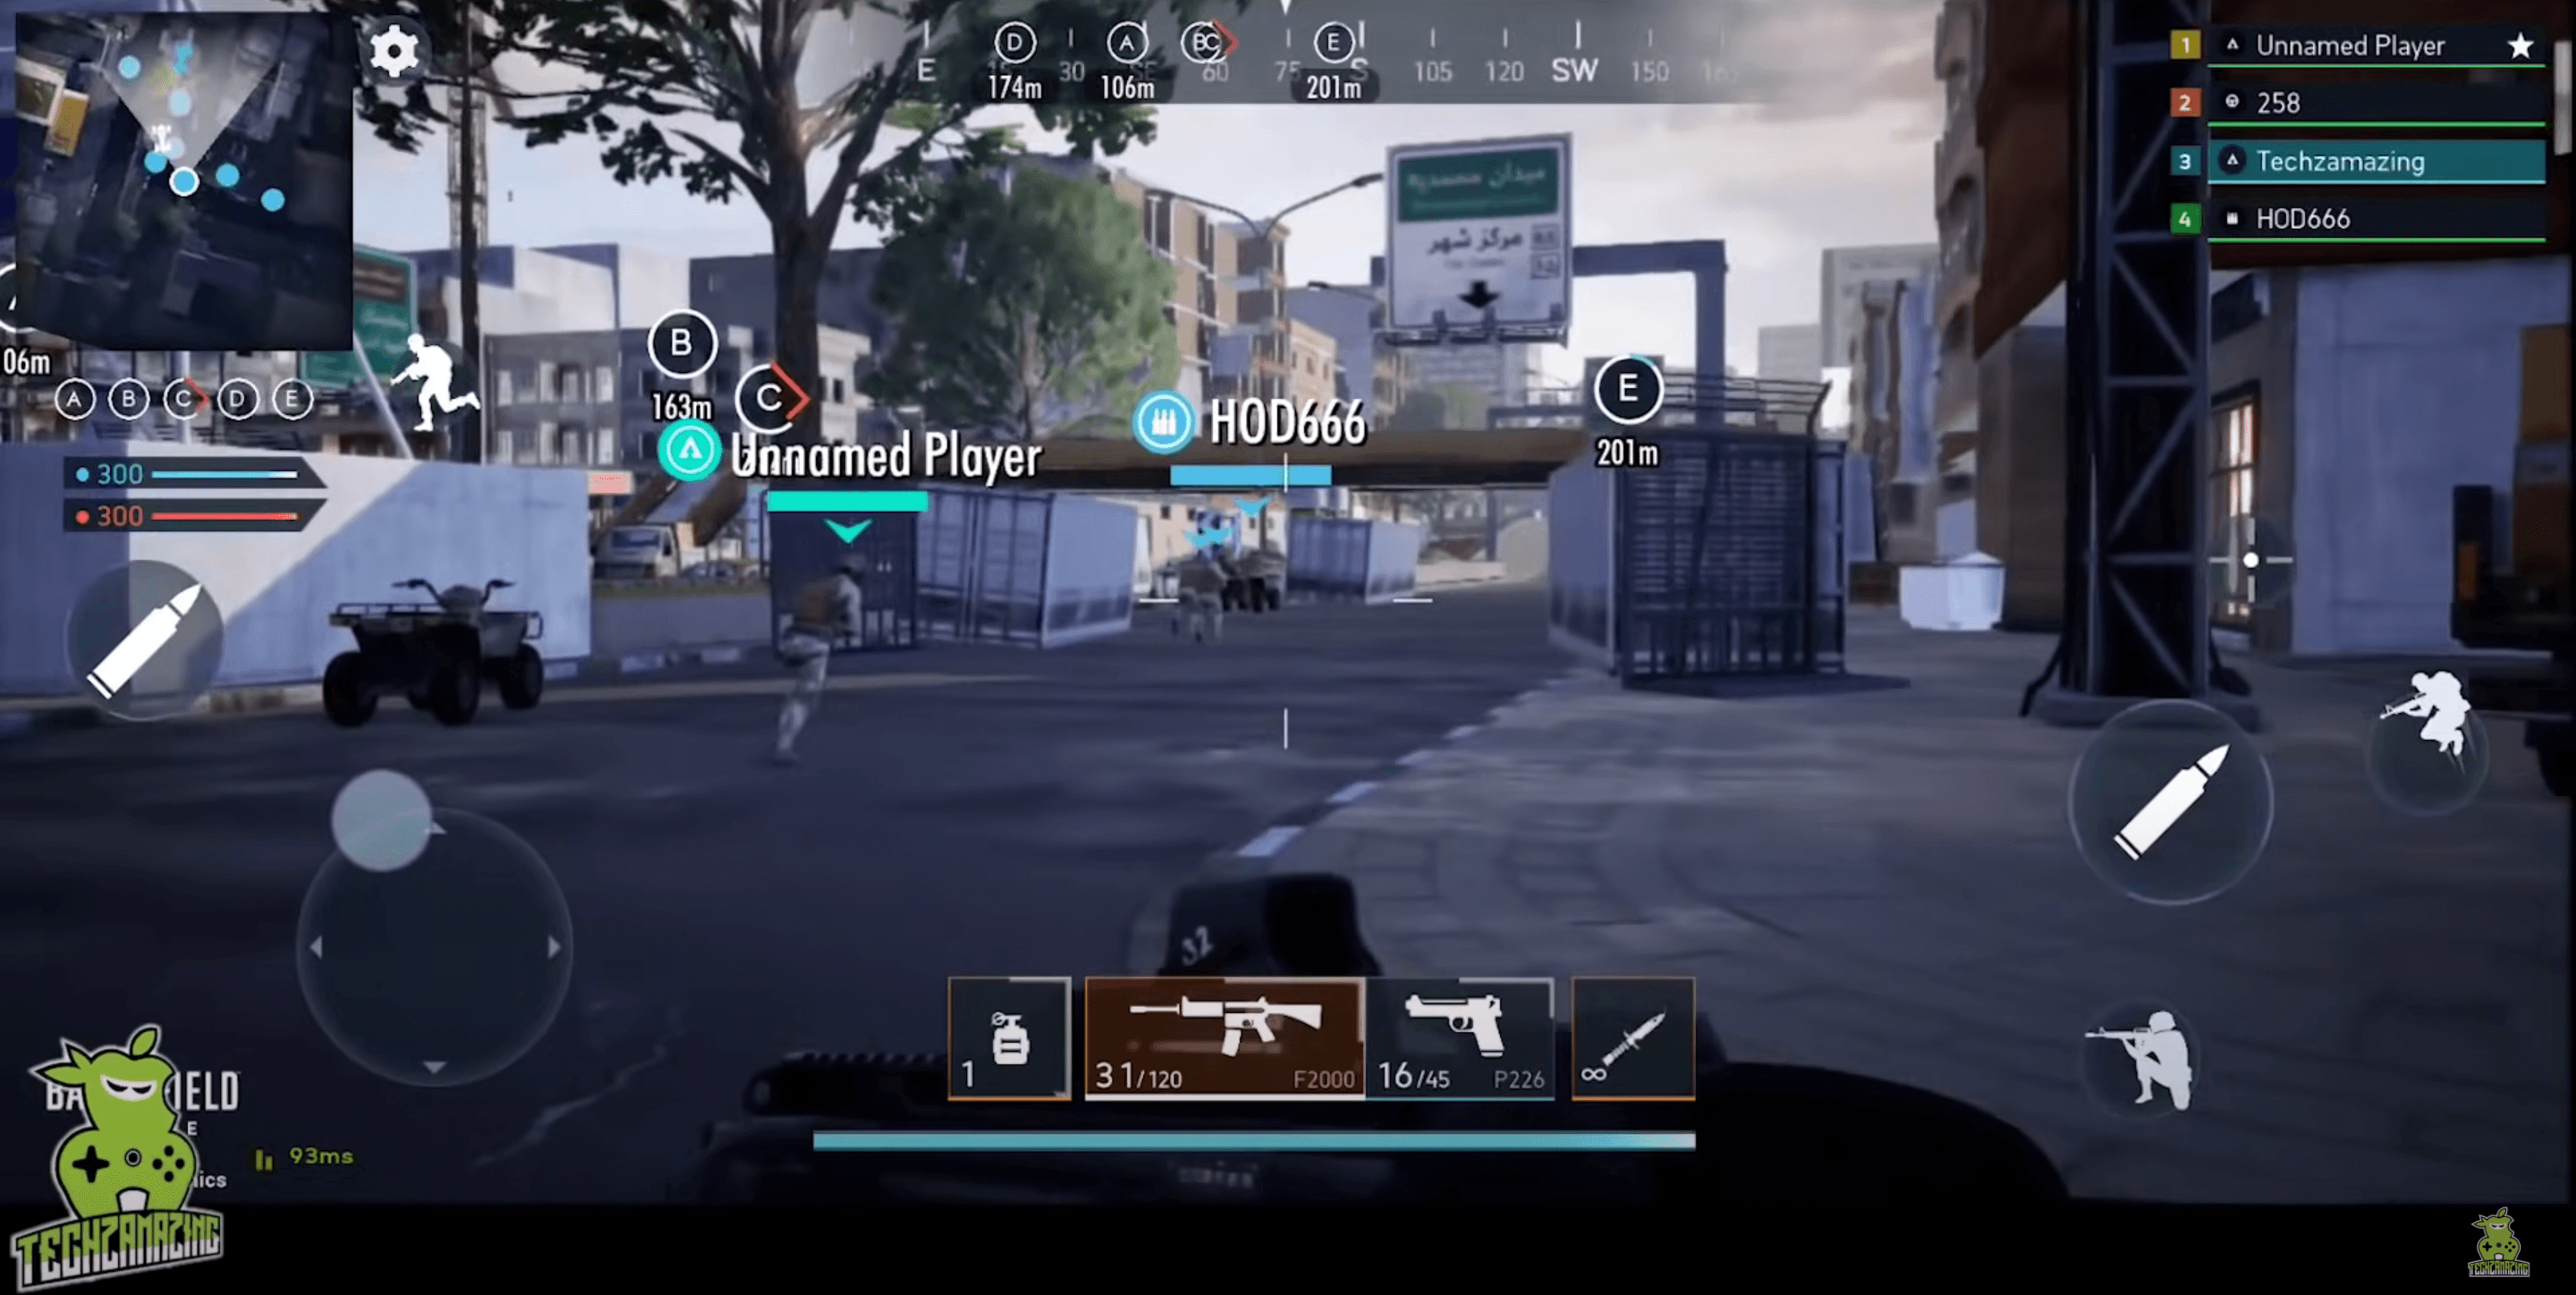 Battlefield Mobile's Southeast Asia Alpha Test Gameplay Footages Surface Online